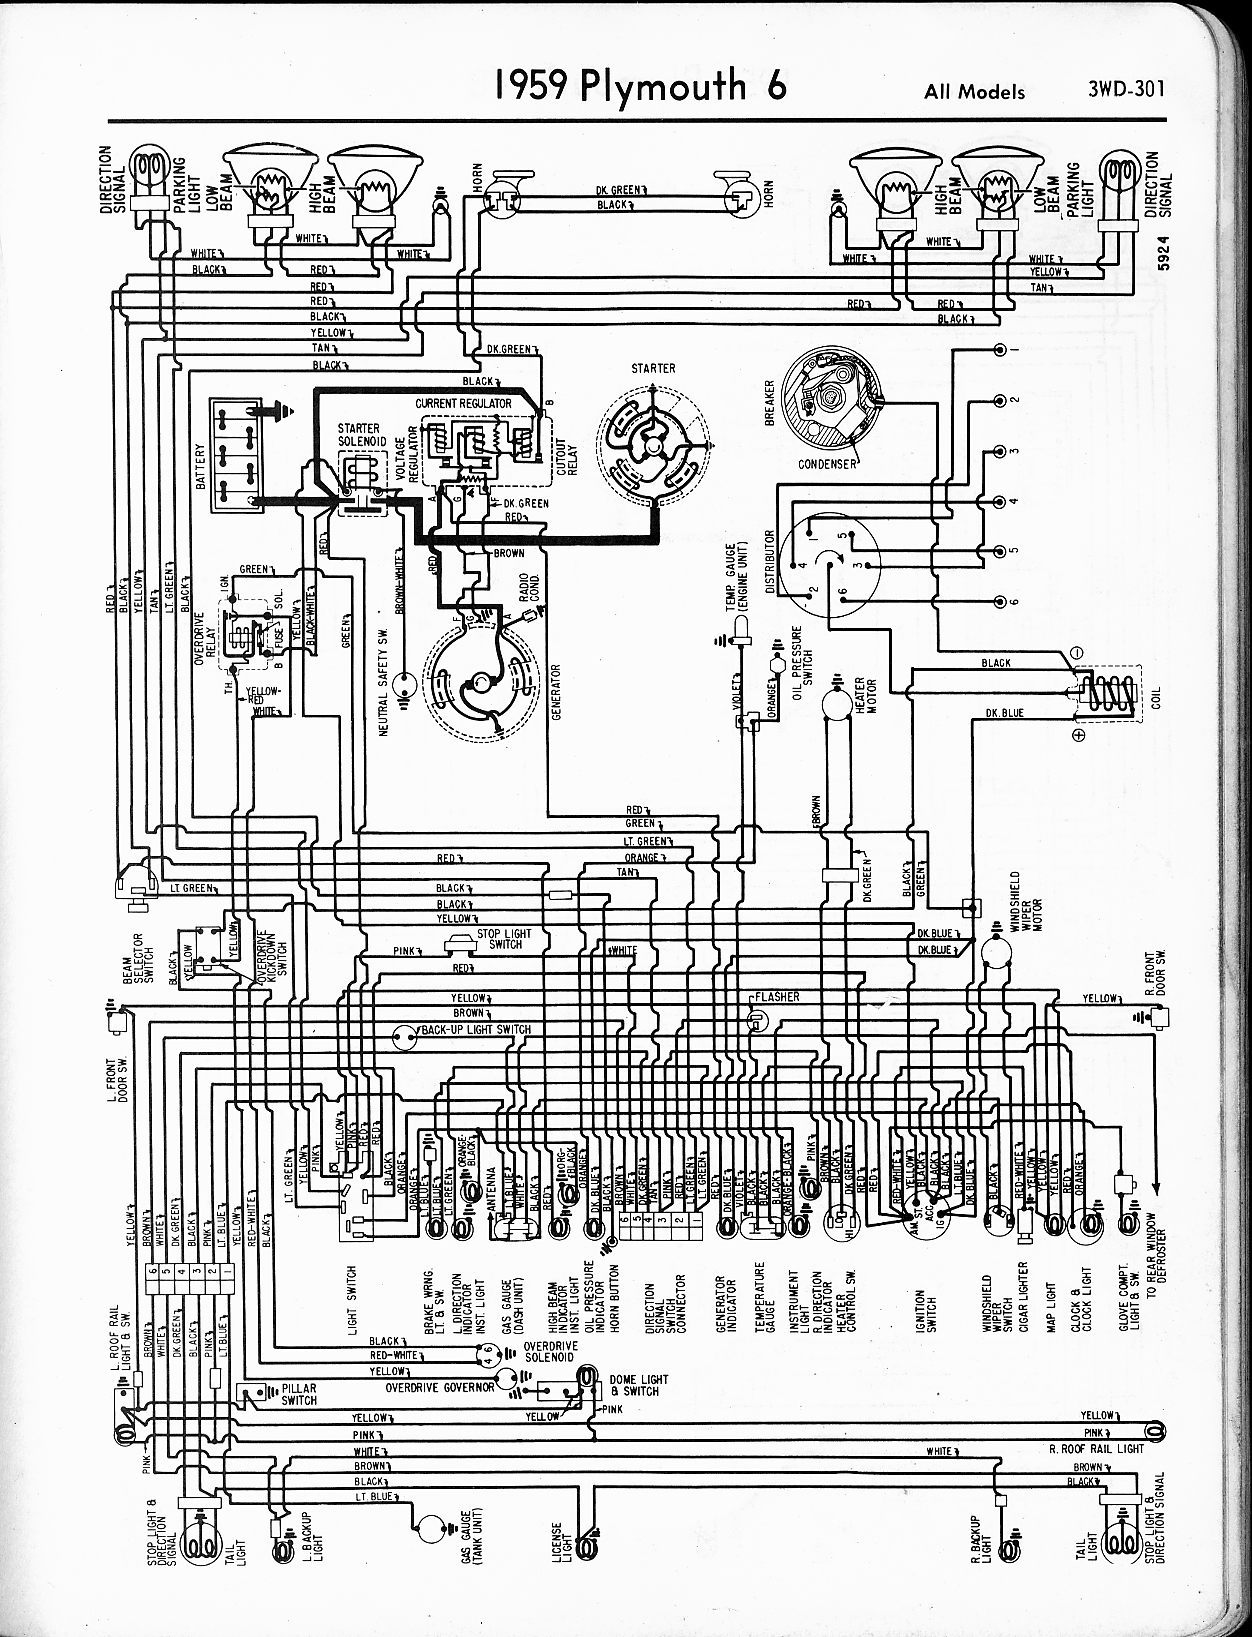 1958 Plymouth Wiring Diagram Reinvent Your Alfa Romeo 1956 1965 The Old Car Manual Project Rh Oldcarmanualproject Com Mopar Diagrams 1954